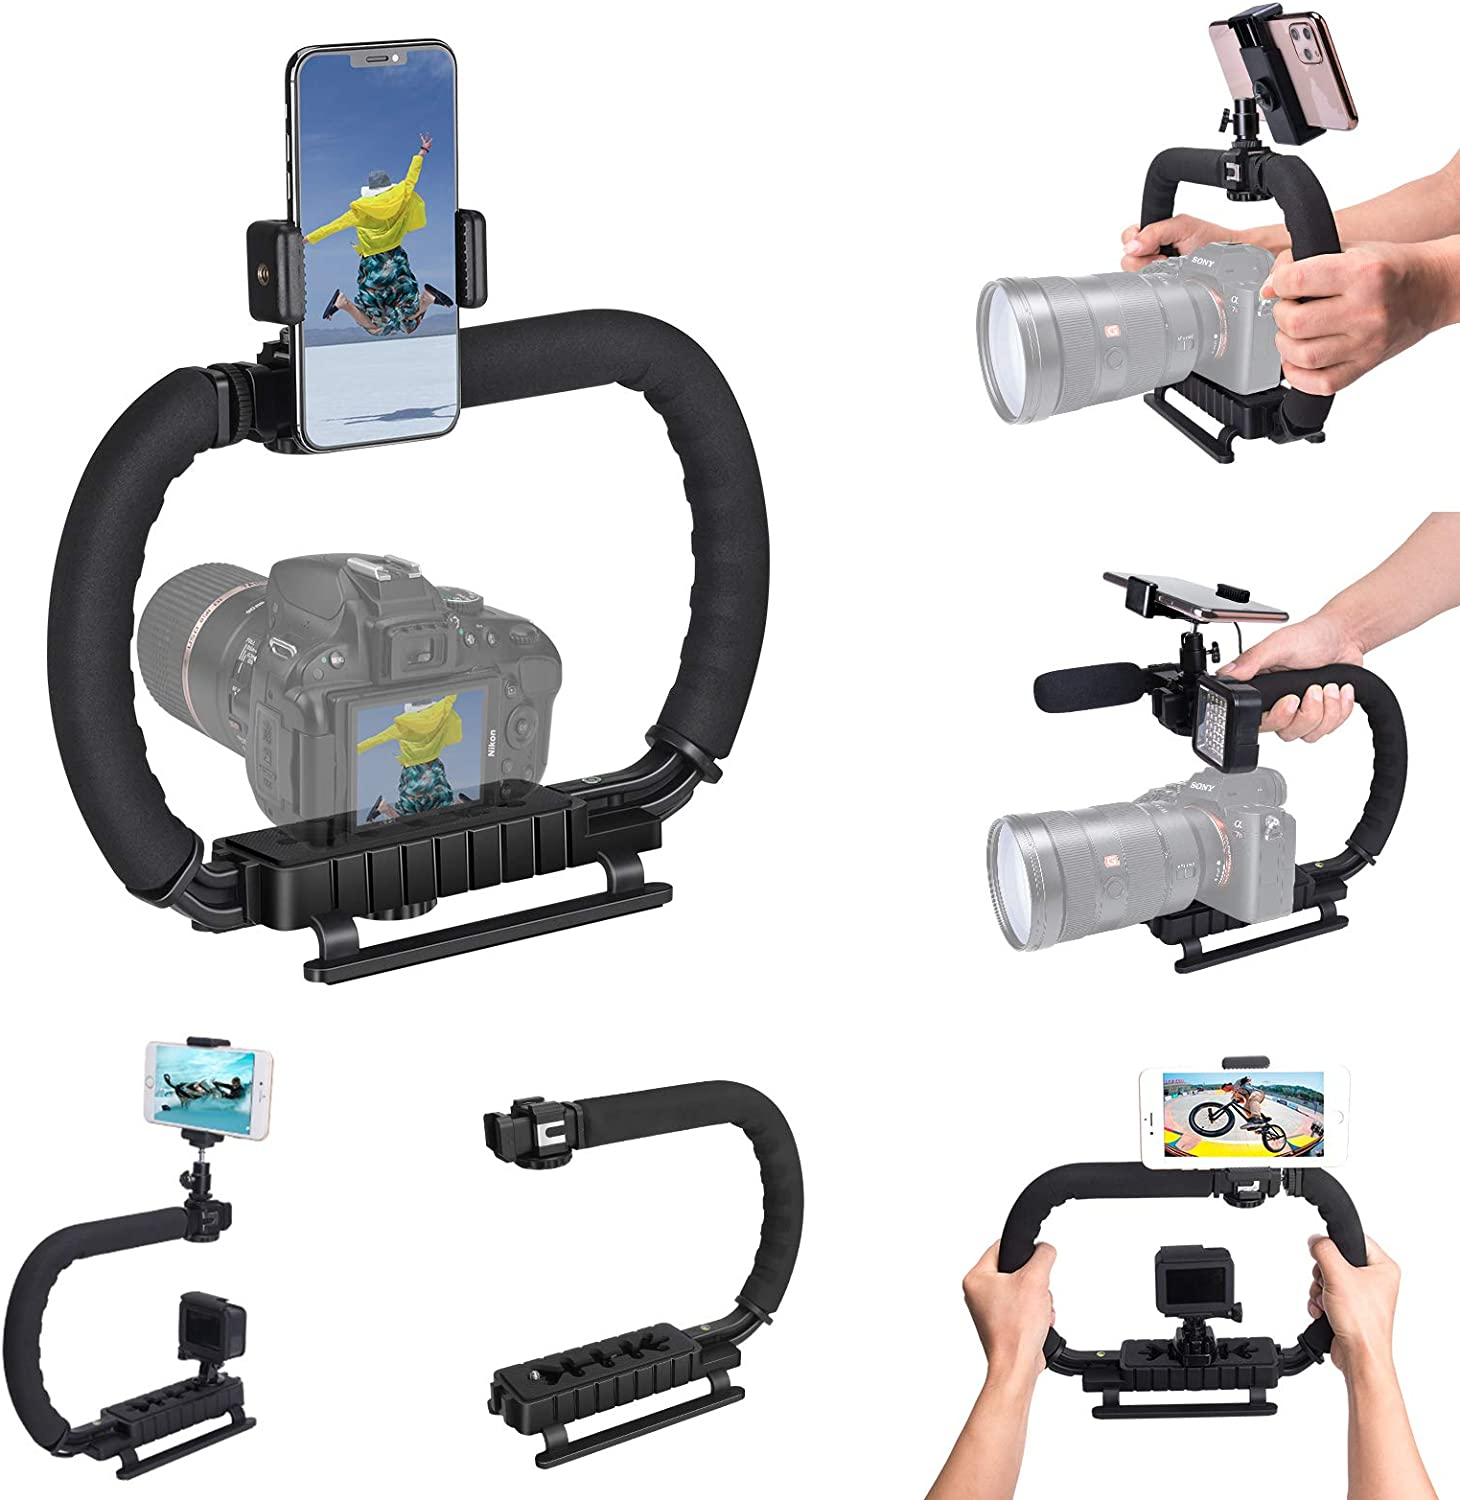 DSLR/Mirrorless/Action Camera Camcorder Phone Stabilizer 3-Shoe 2-Handed Vlog Video Holder Rig Low Position Shooting Steadycam Mount Detachable Grip Fit for GoPro Sony Canon Nikon DV iPhone Samsung : Camera & Photo